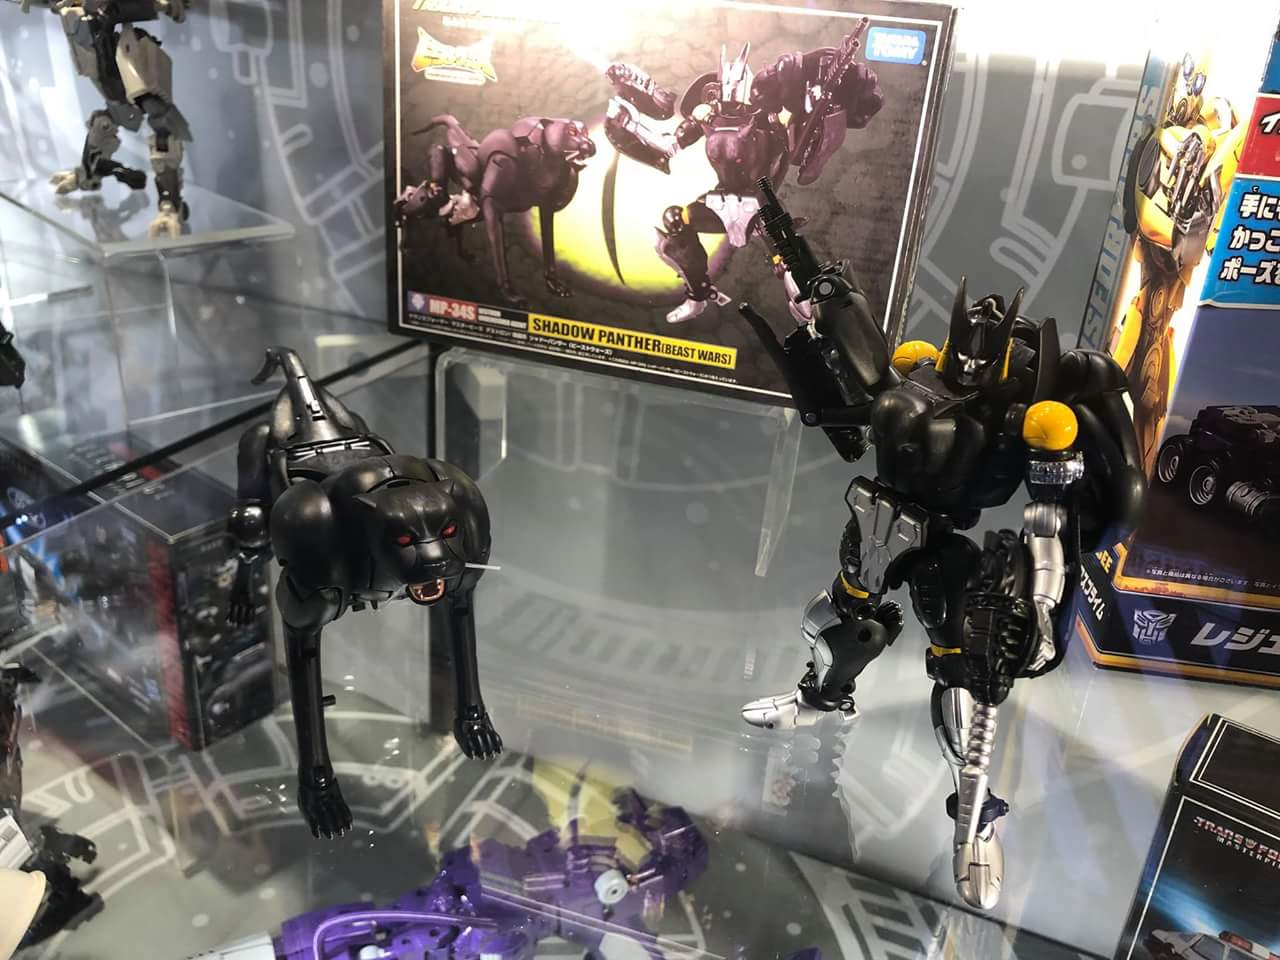 [Masterpiece] MP-34 Cheetor et MP-34S Shadow Panther (Beast Wars) - Page 3 XfePzXrb_o